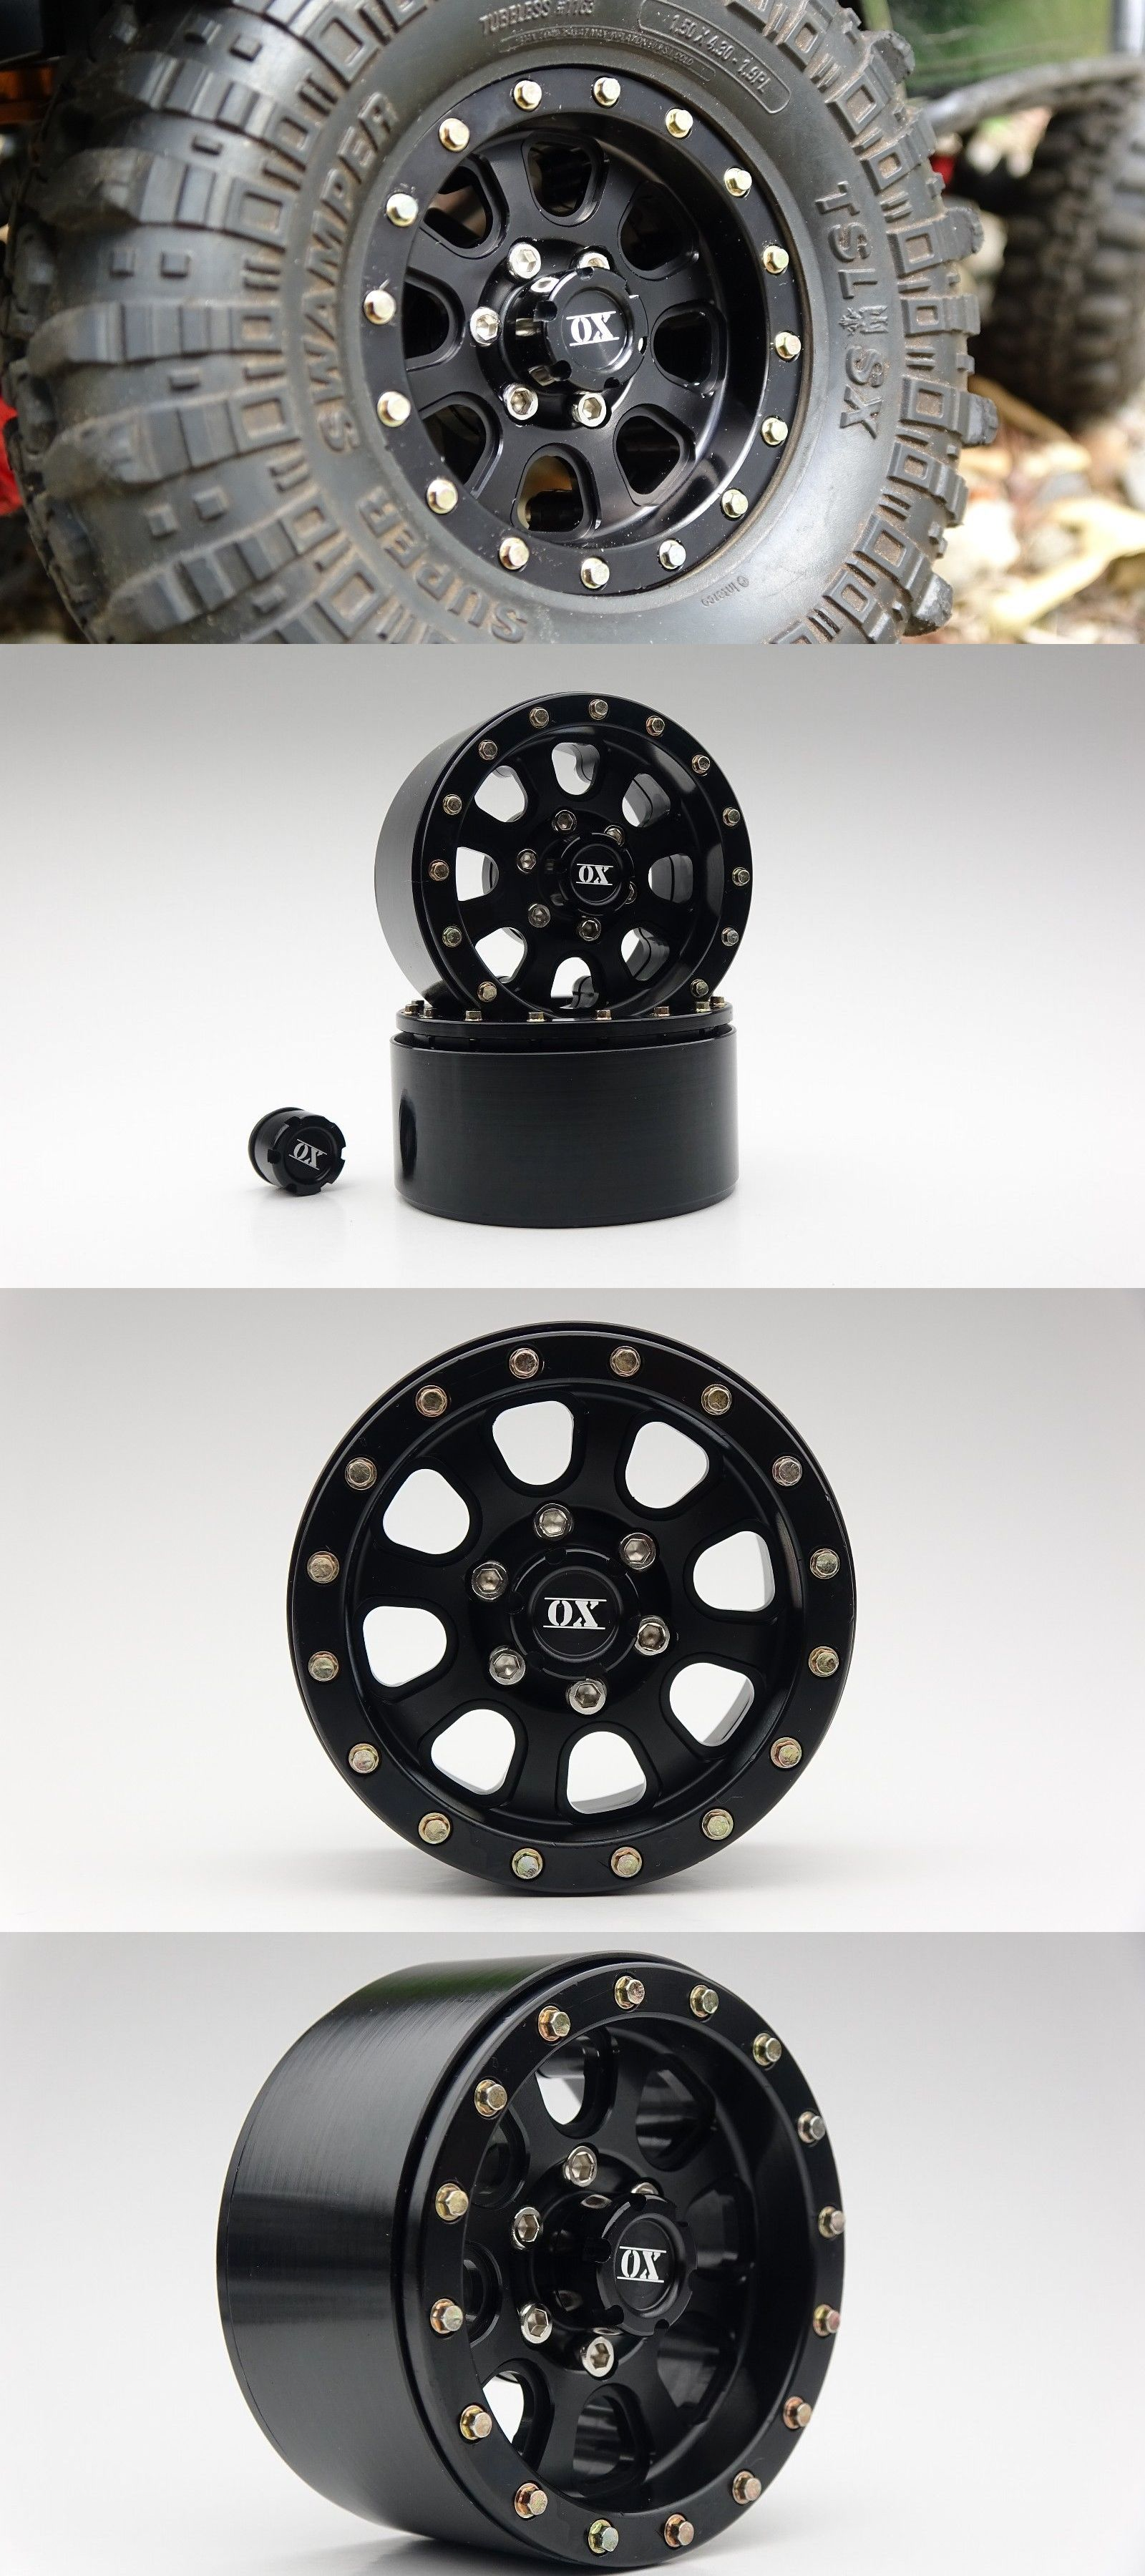 Chassis Drivetrain And Wheels 182196 4 Ox Rc 1 9 Aluminum Beadlock Wheels Fits 1 10 Rc Truck Scx10 Ii Everest Buy It N Beadlock Wheels Rc Trucks Drivetrain